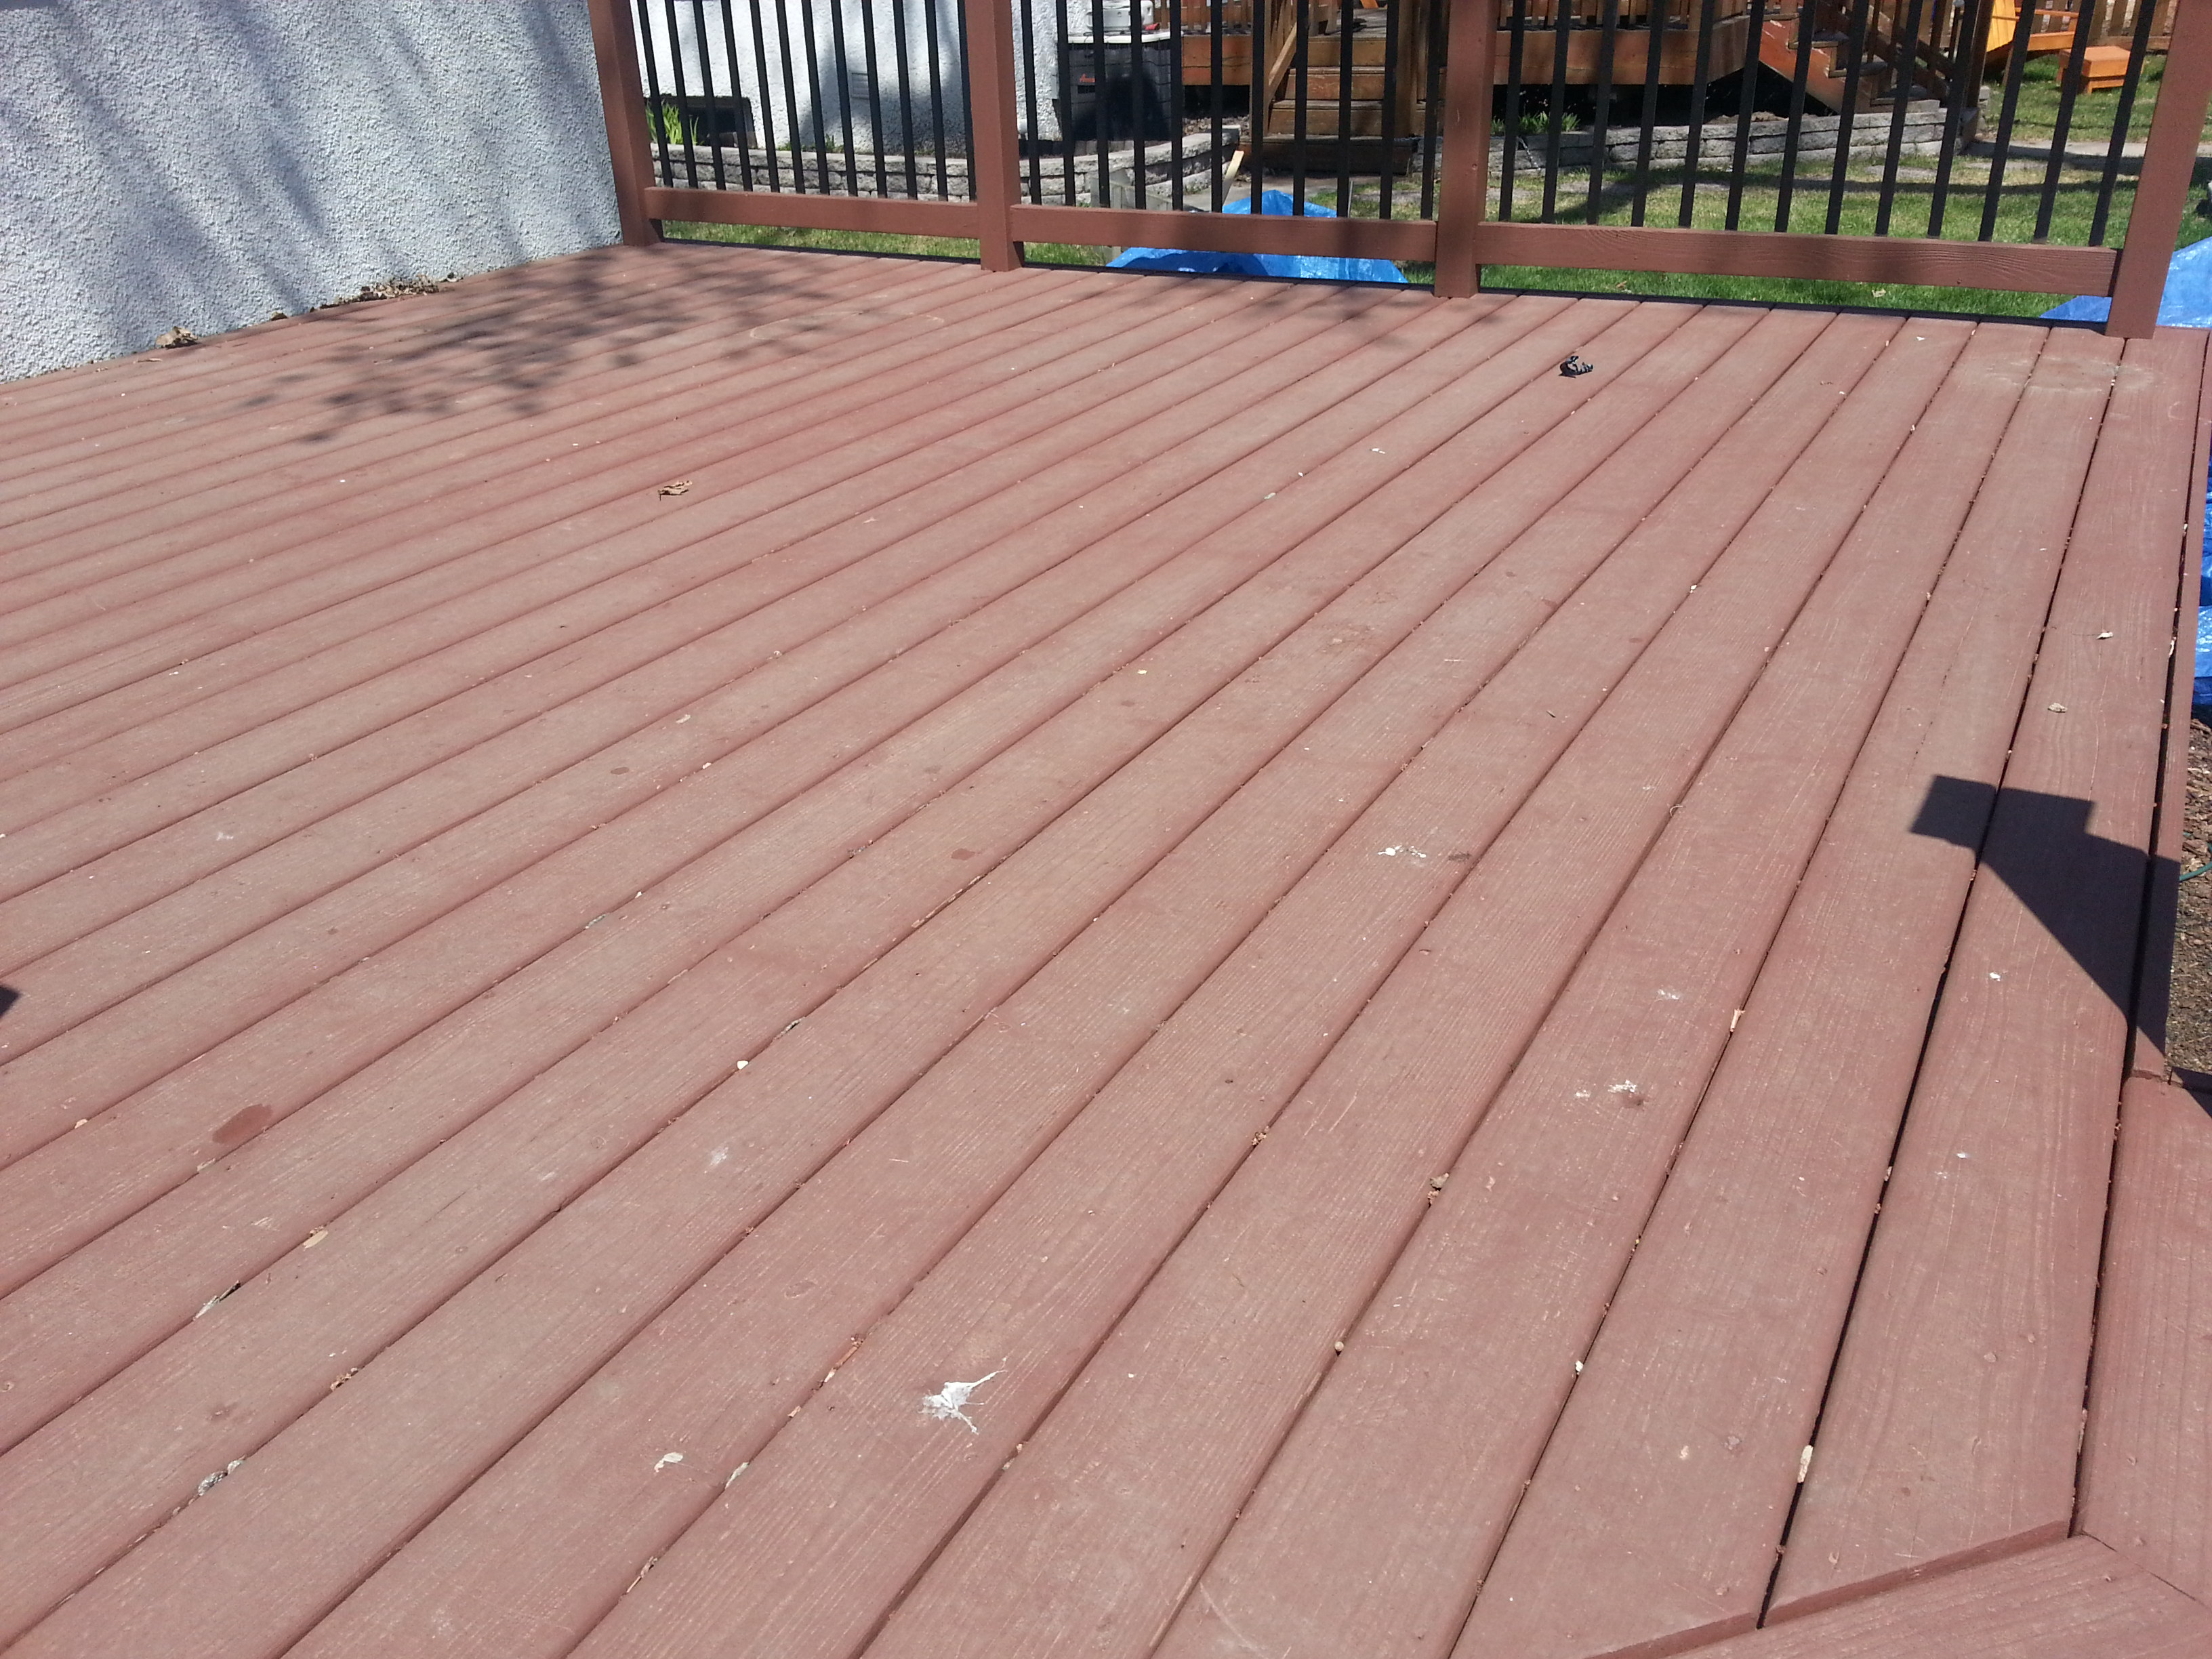 Behr Deck Over Colors Available | Behr Premium Deckover | Behr Deck Over